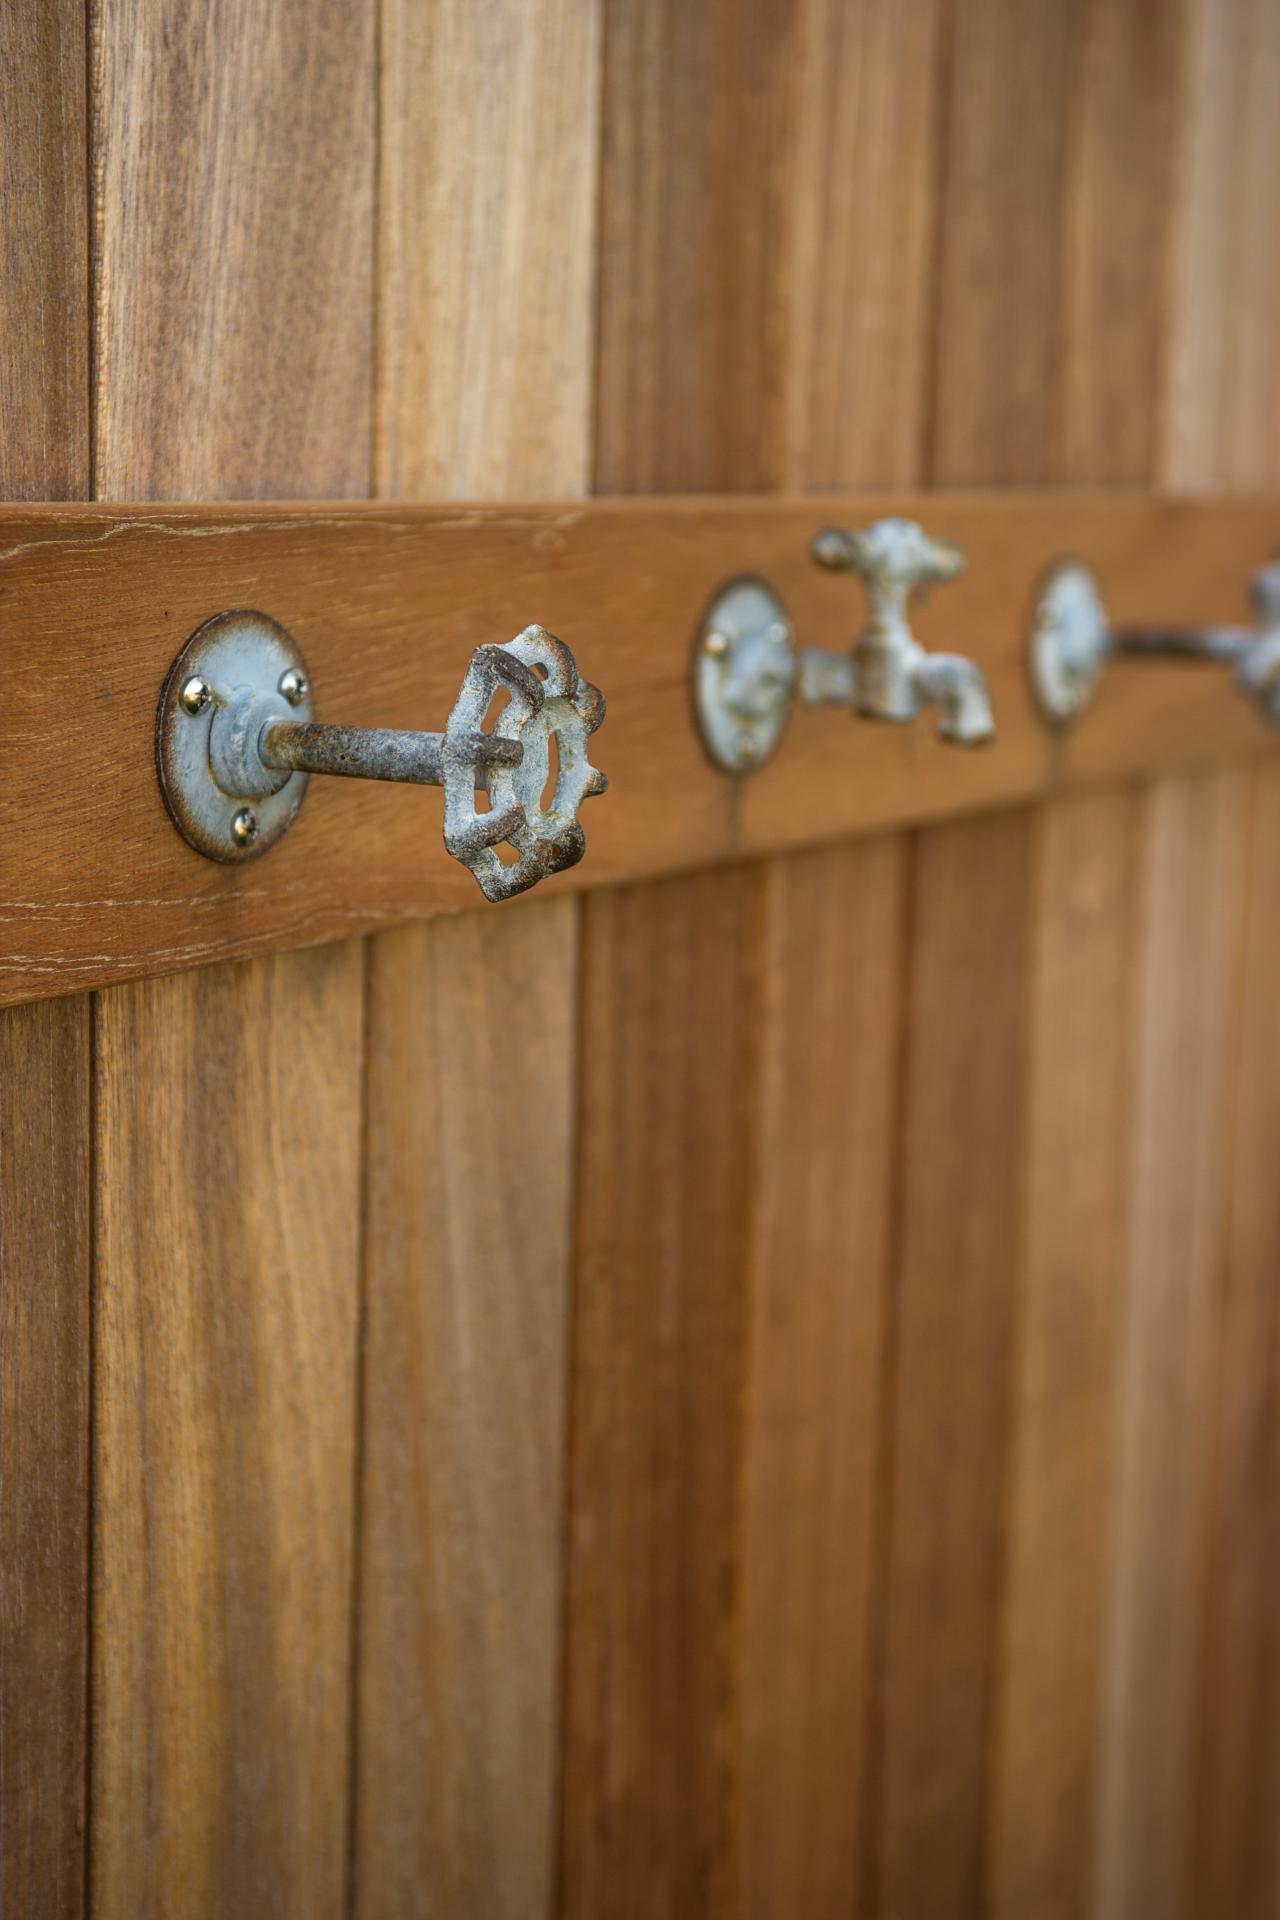 dh2015_outdoor-shower_weathered-faucets_v.jpg.rend.hgtvcom.1280.1920